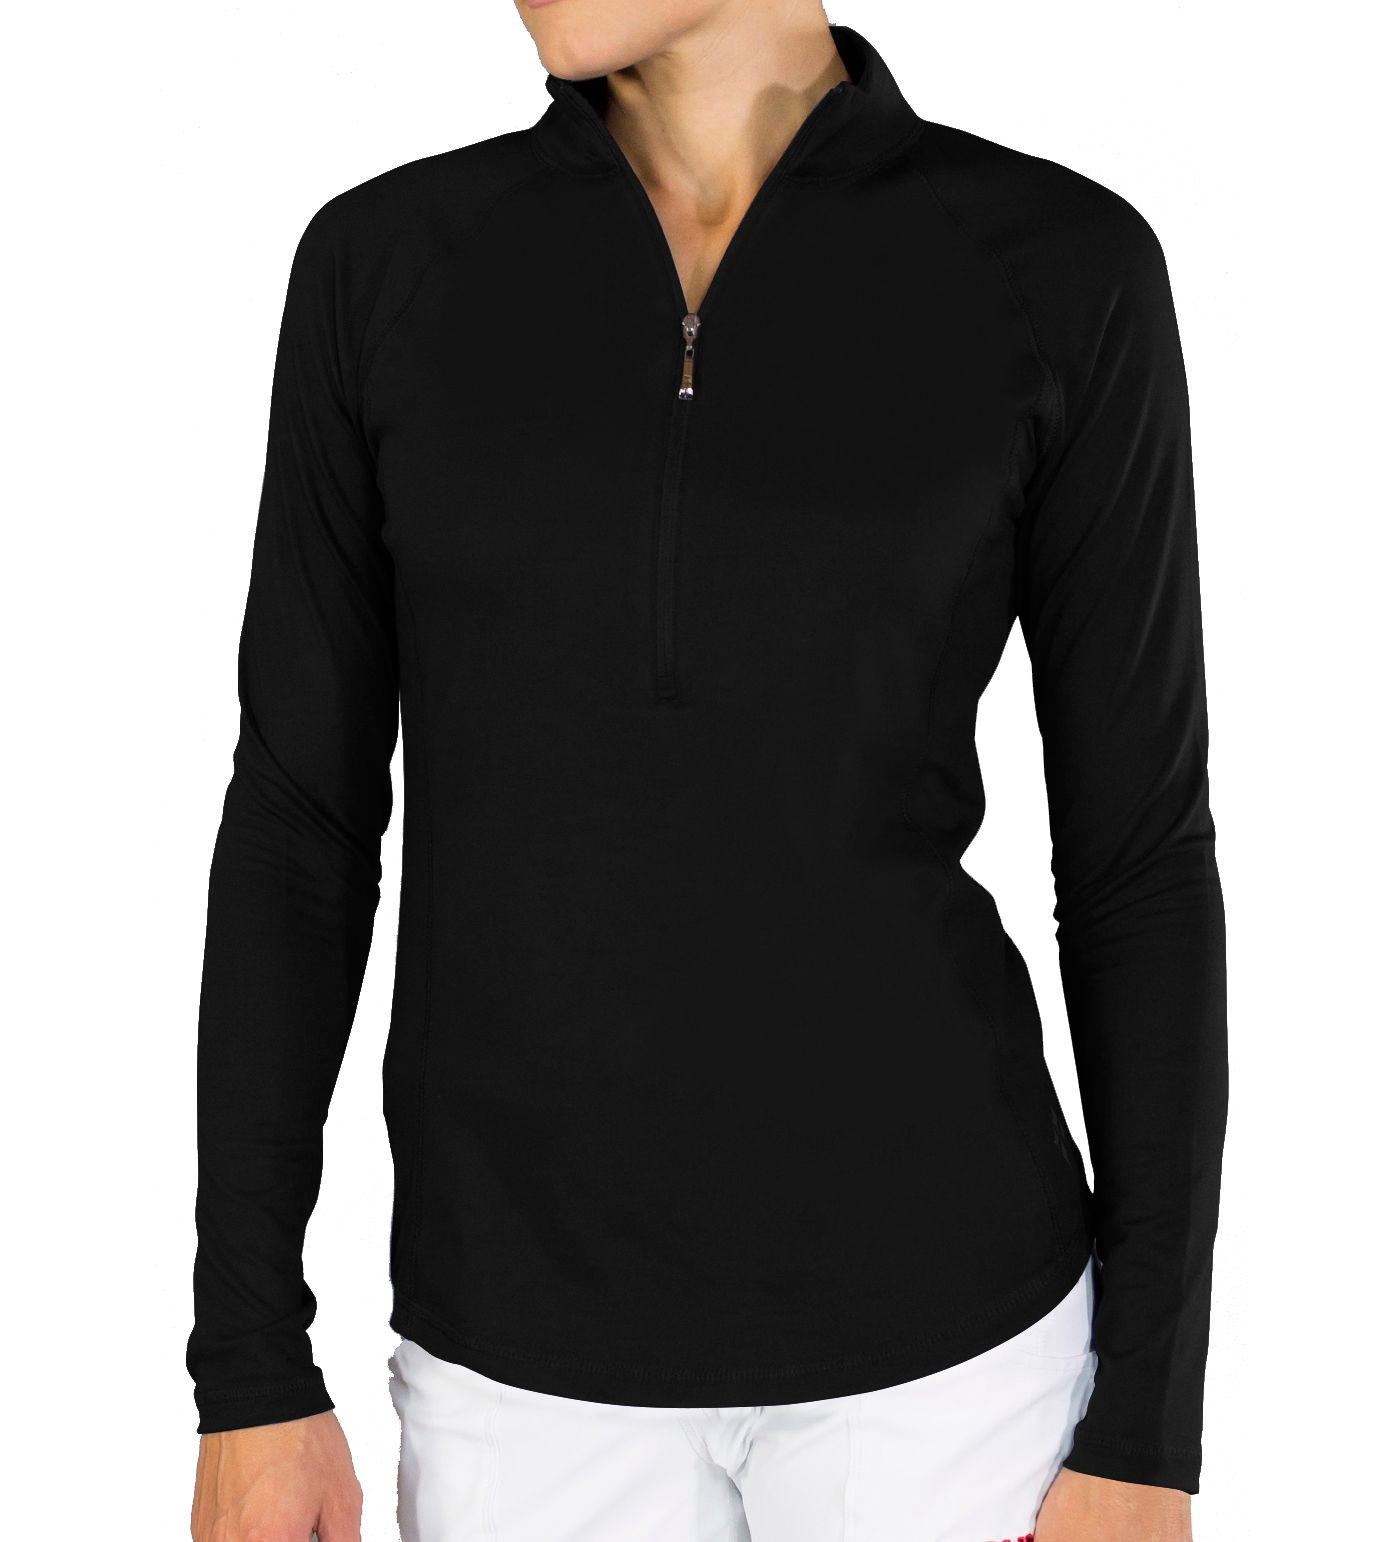 Jofit Women's Brushed Long Sleeve Mock